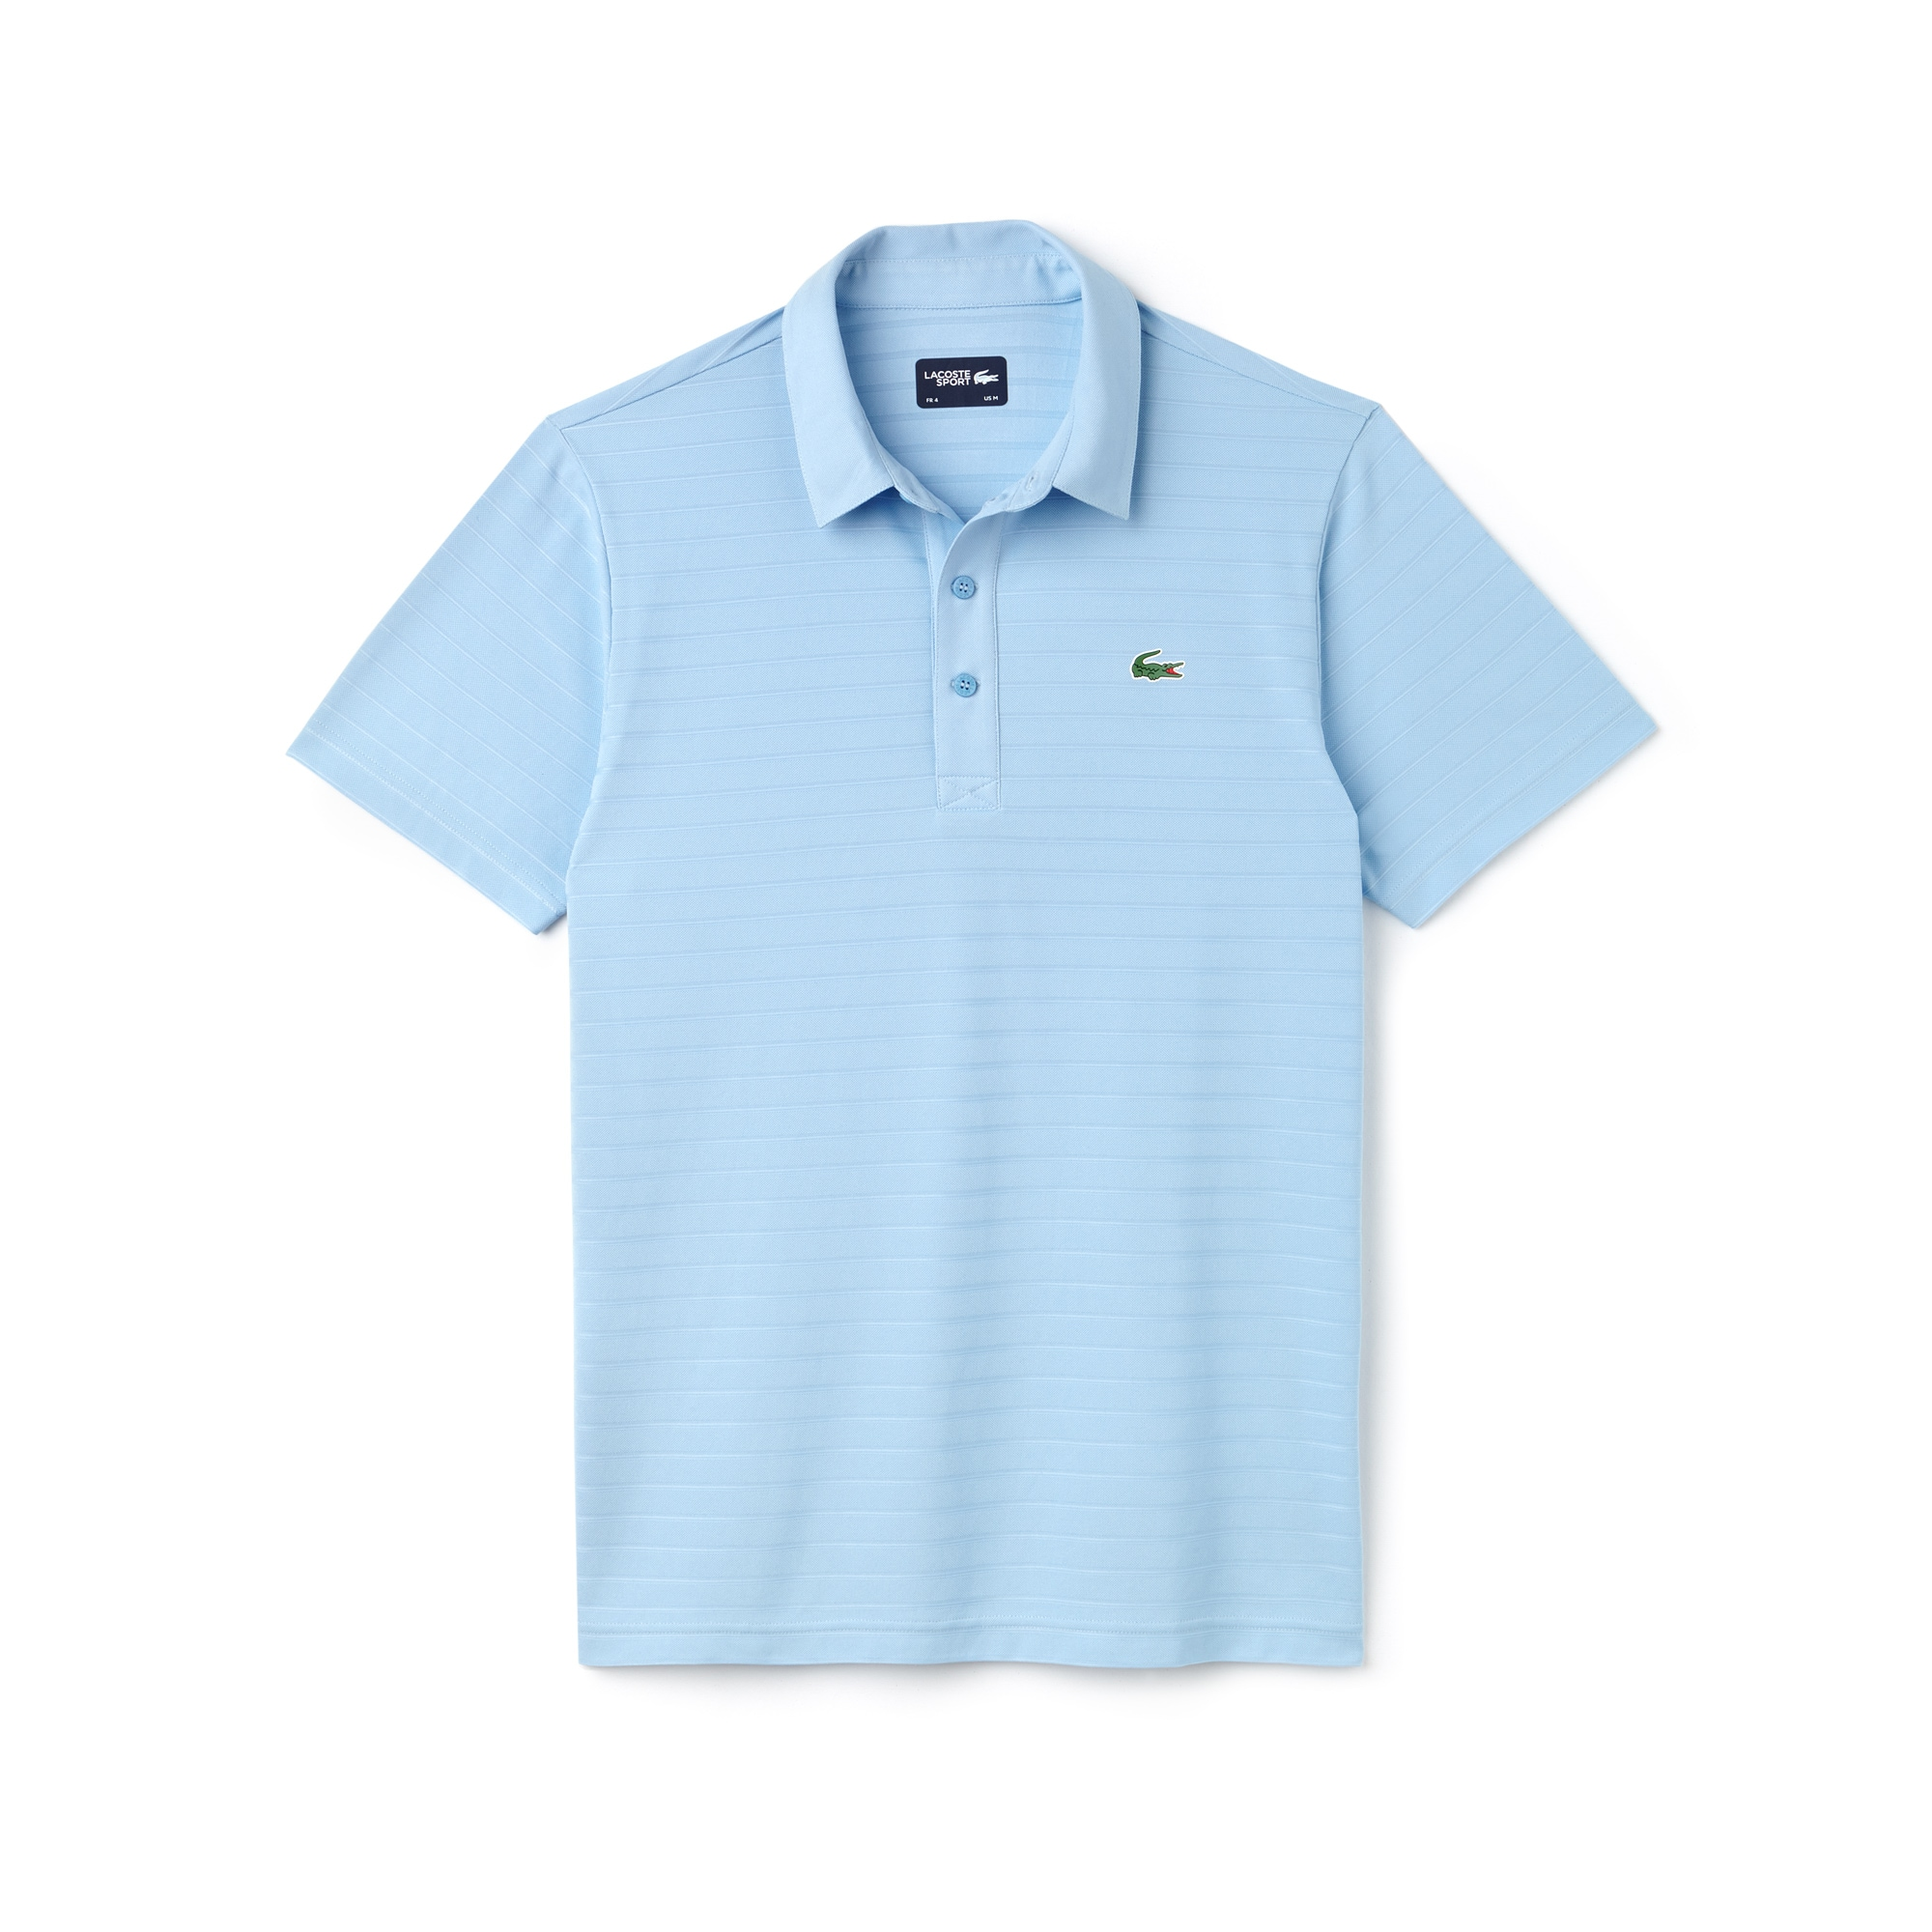 Lacoste - Herren-Funktions-Polo aus Jacquard-Jersey LACOSTE SPORT GOLF - 3